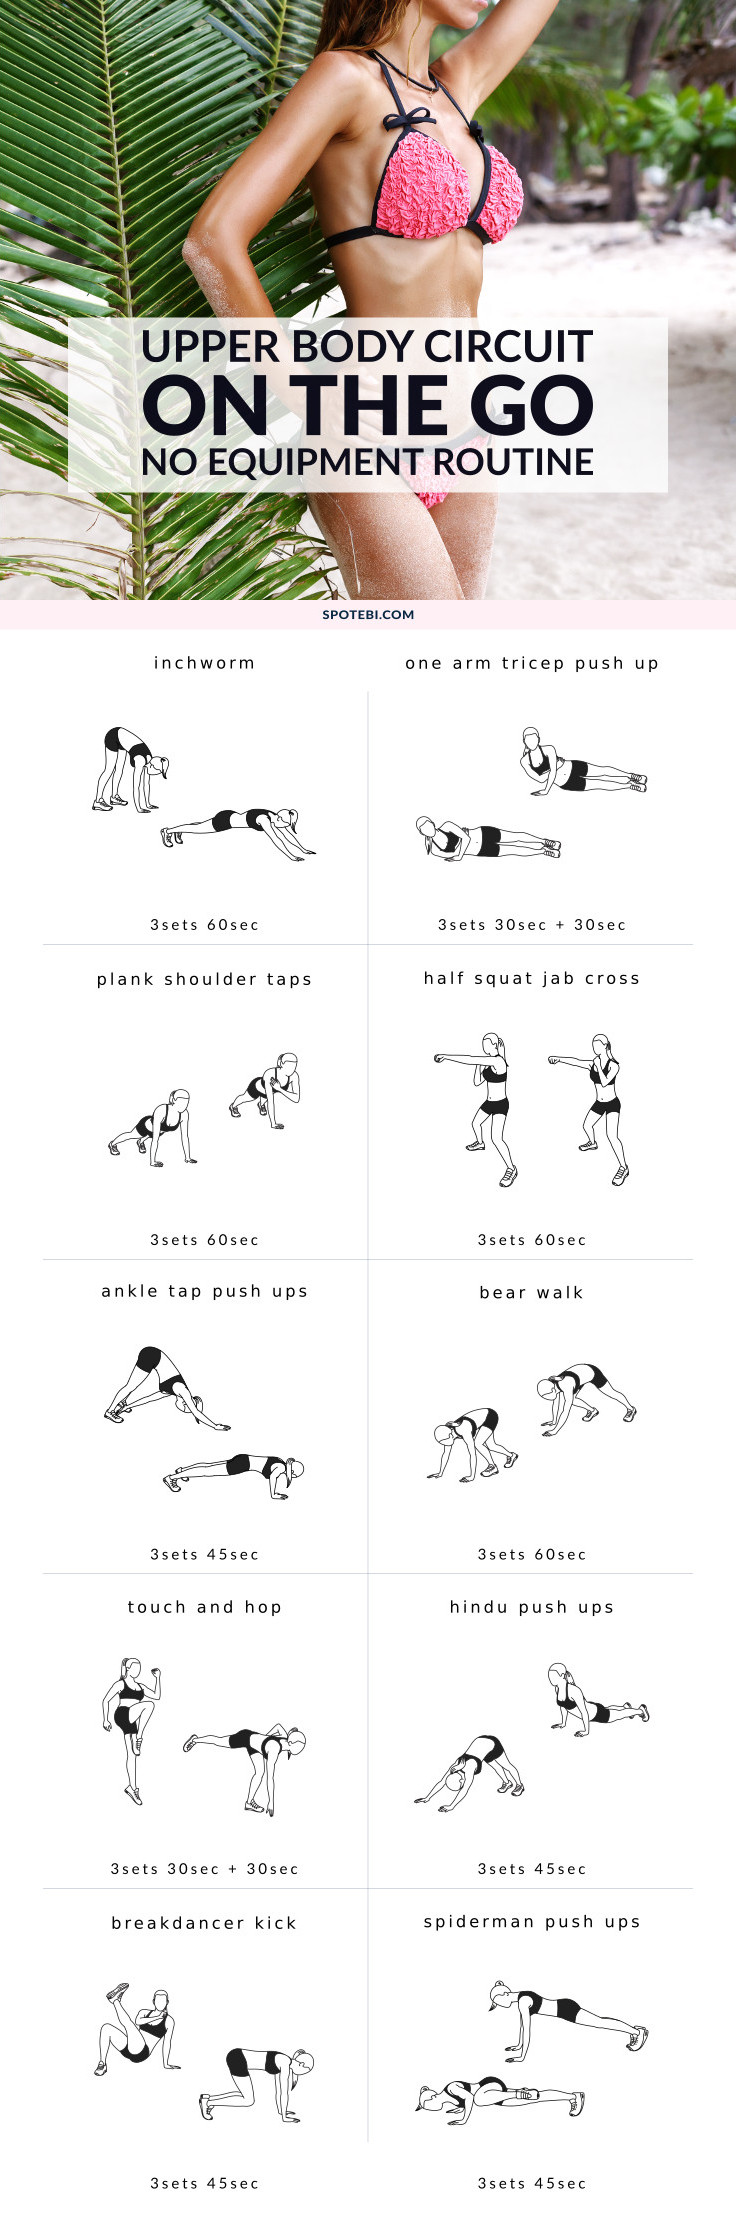 UPPER BODY BODYWEIGHT EXERCISES FOR WOMEN Sculpt Your Back Chest Shoulders And Arms Boost Weight Loss With